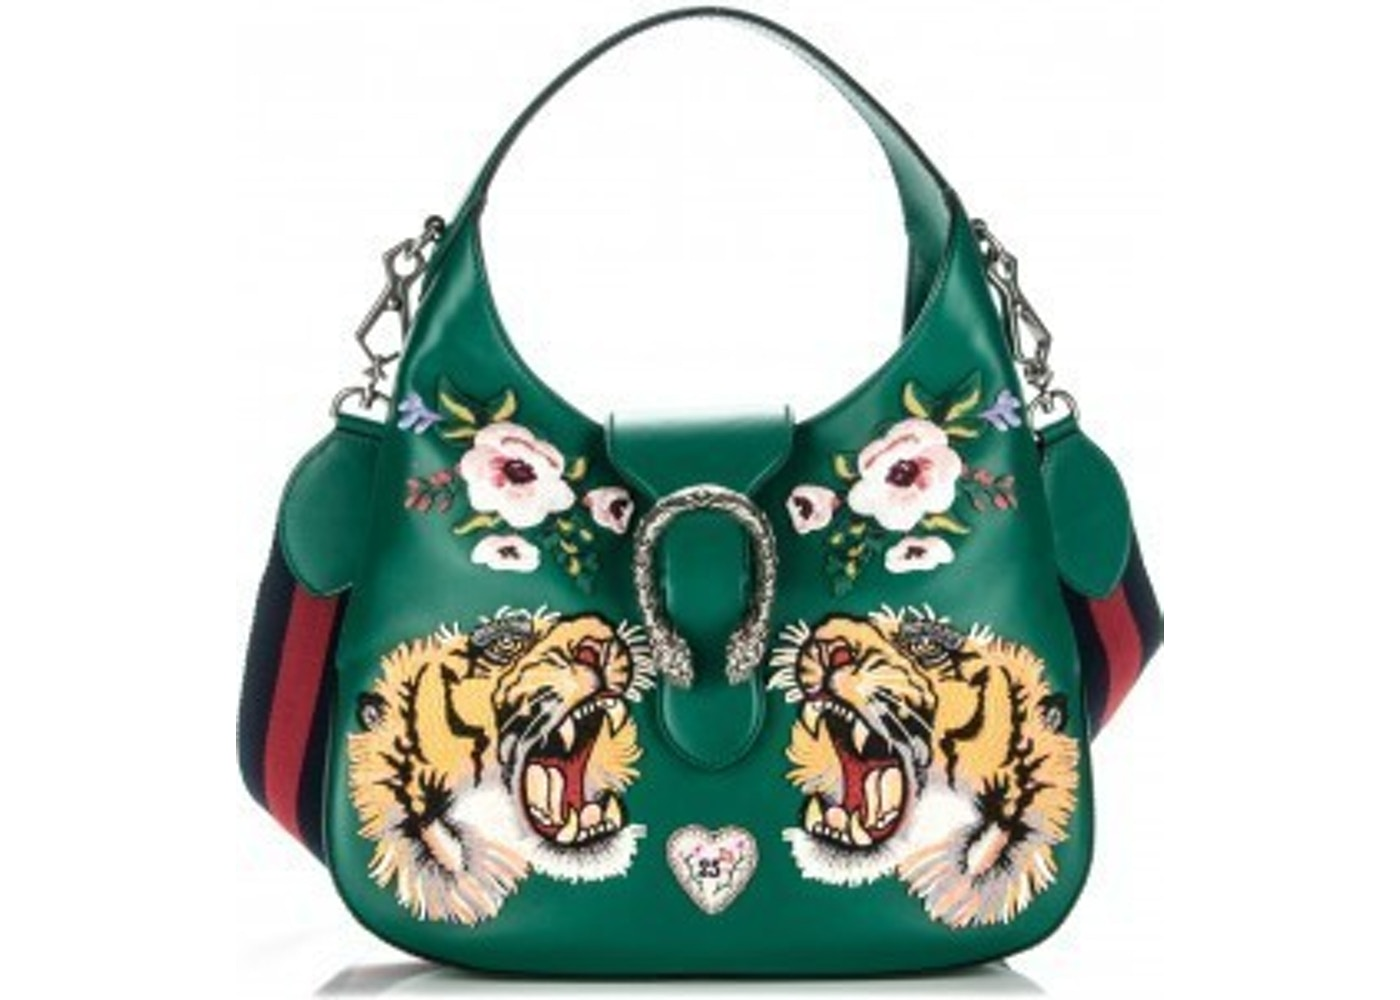 e45583c8d046 Gucci Dionysus Shoulder Embroidered Dionysus Hobo Small Green